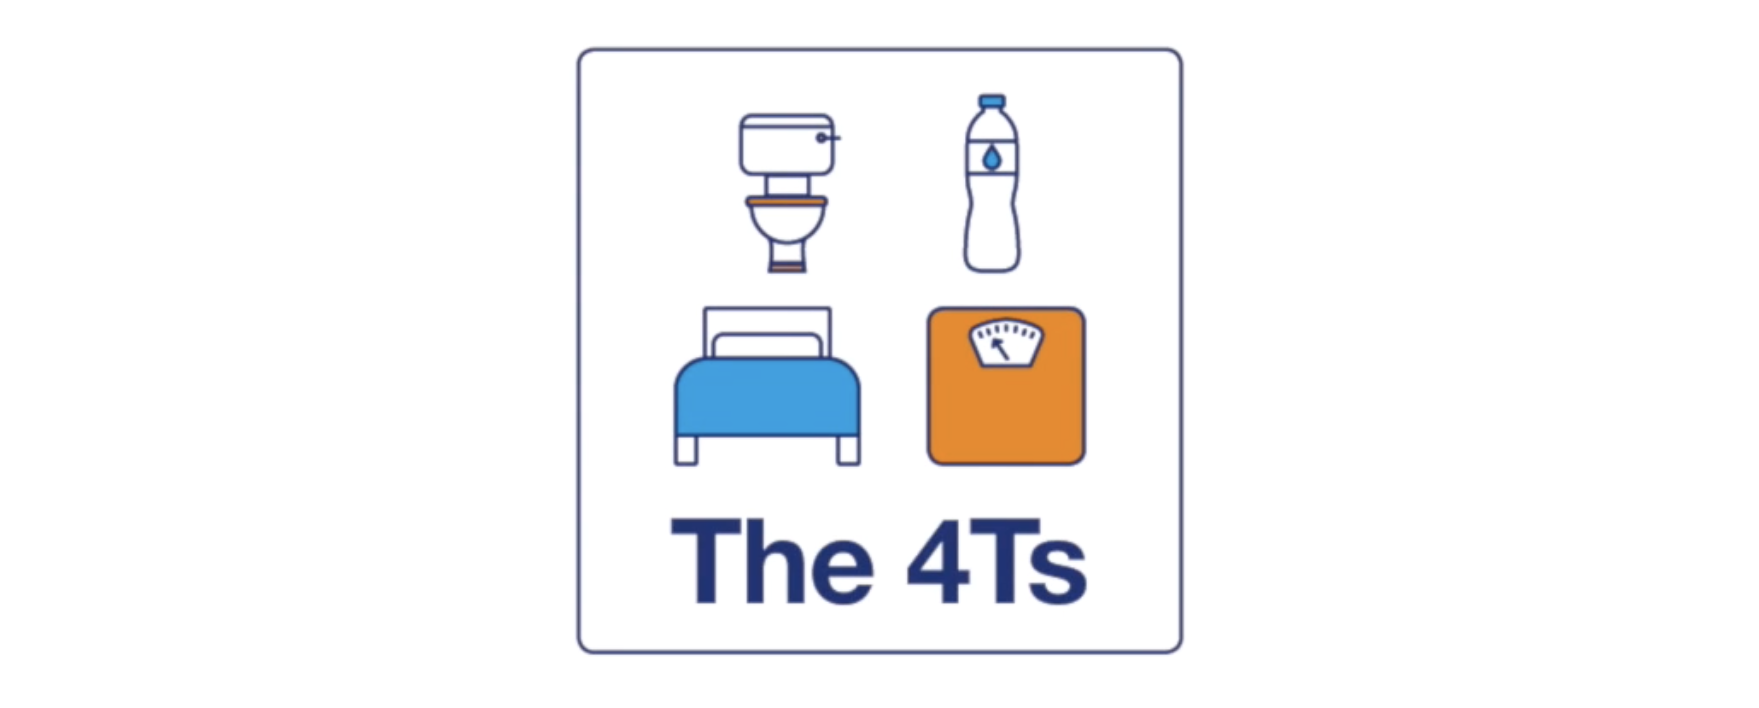 The 4ts of type 1 diabetes